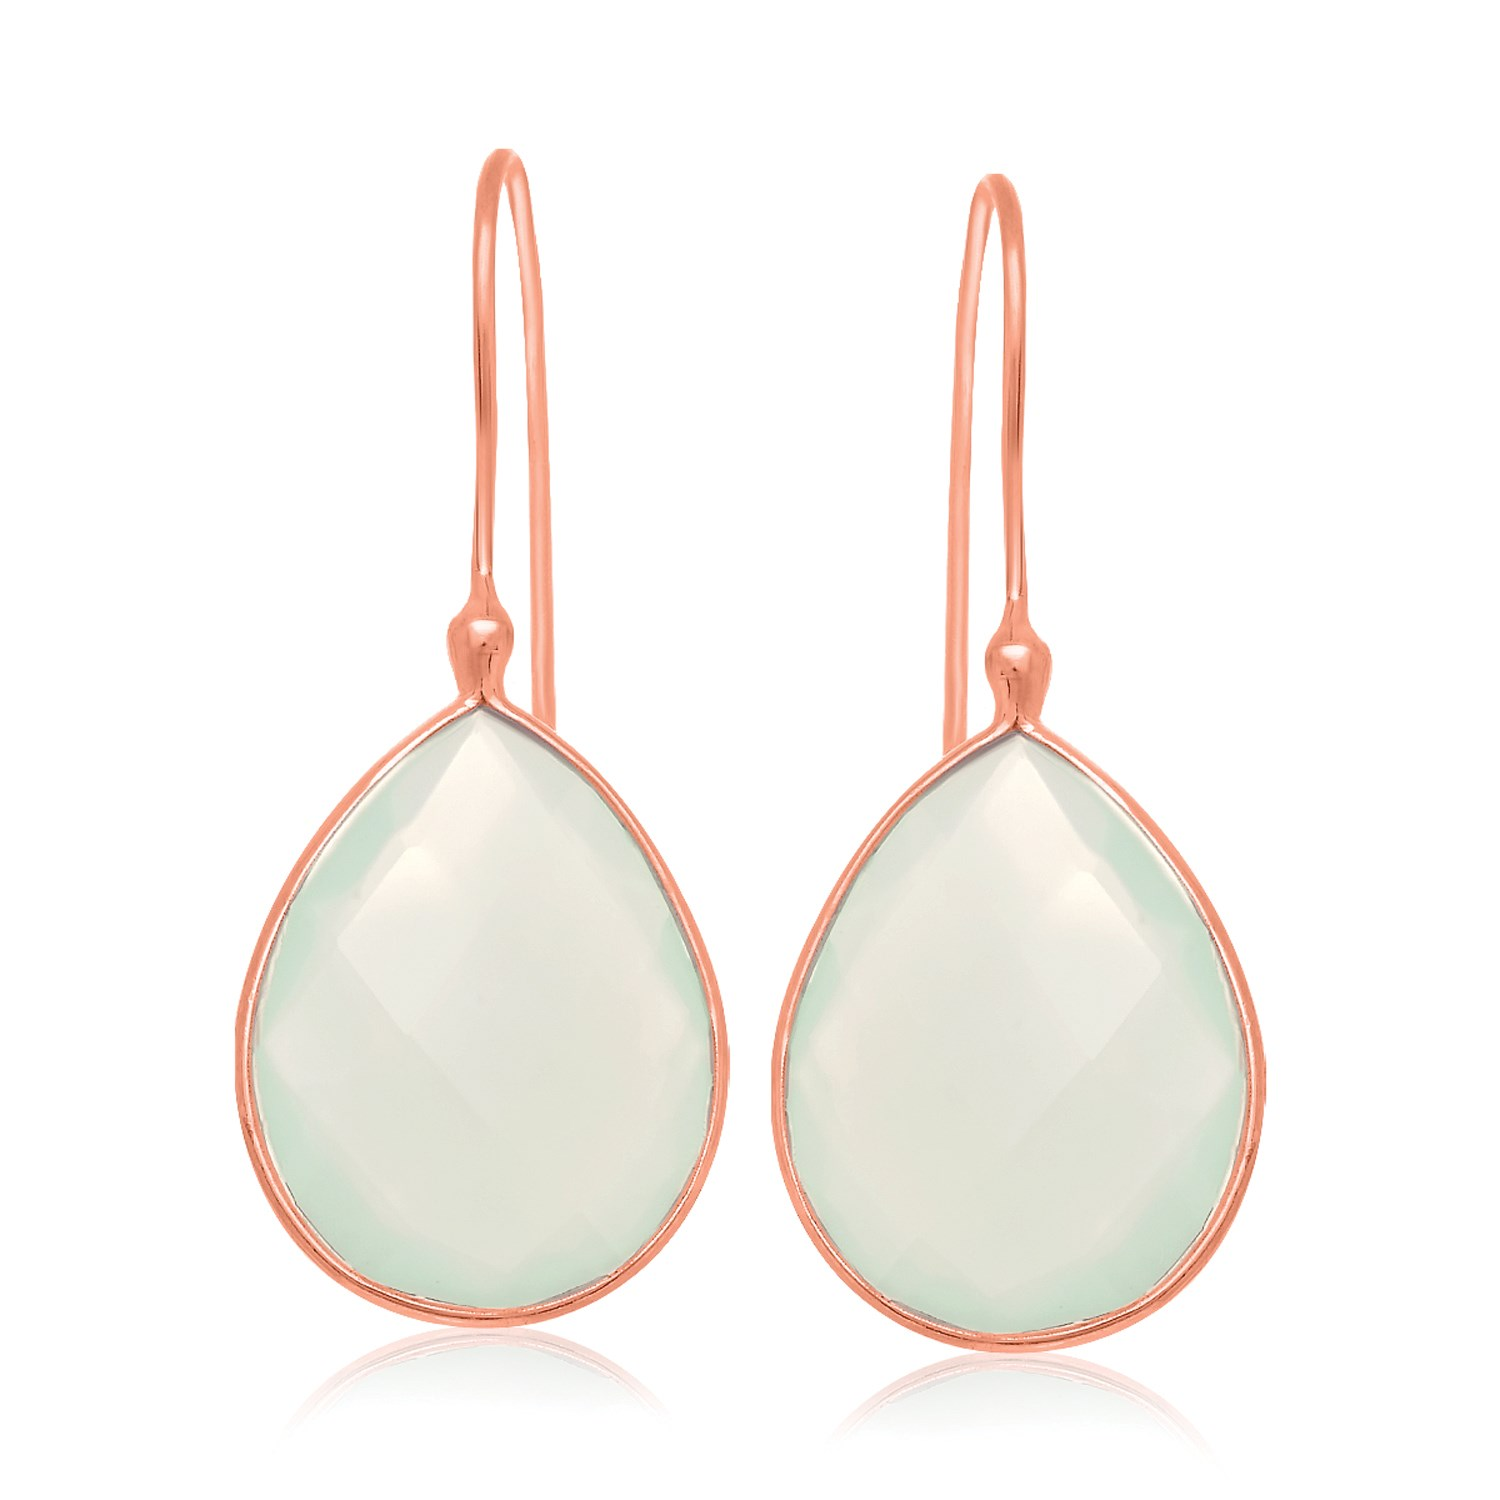 Sterling Silver Rose Gold Plated Dangling Earrings with Teardrop Aqua Chalcedony by Mia Diamonds